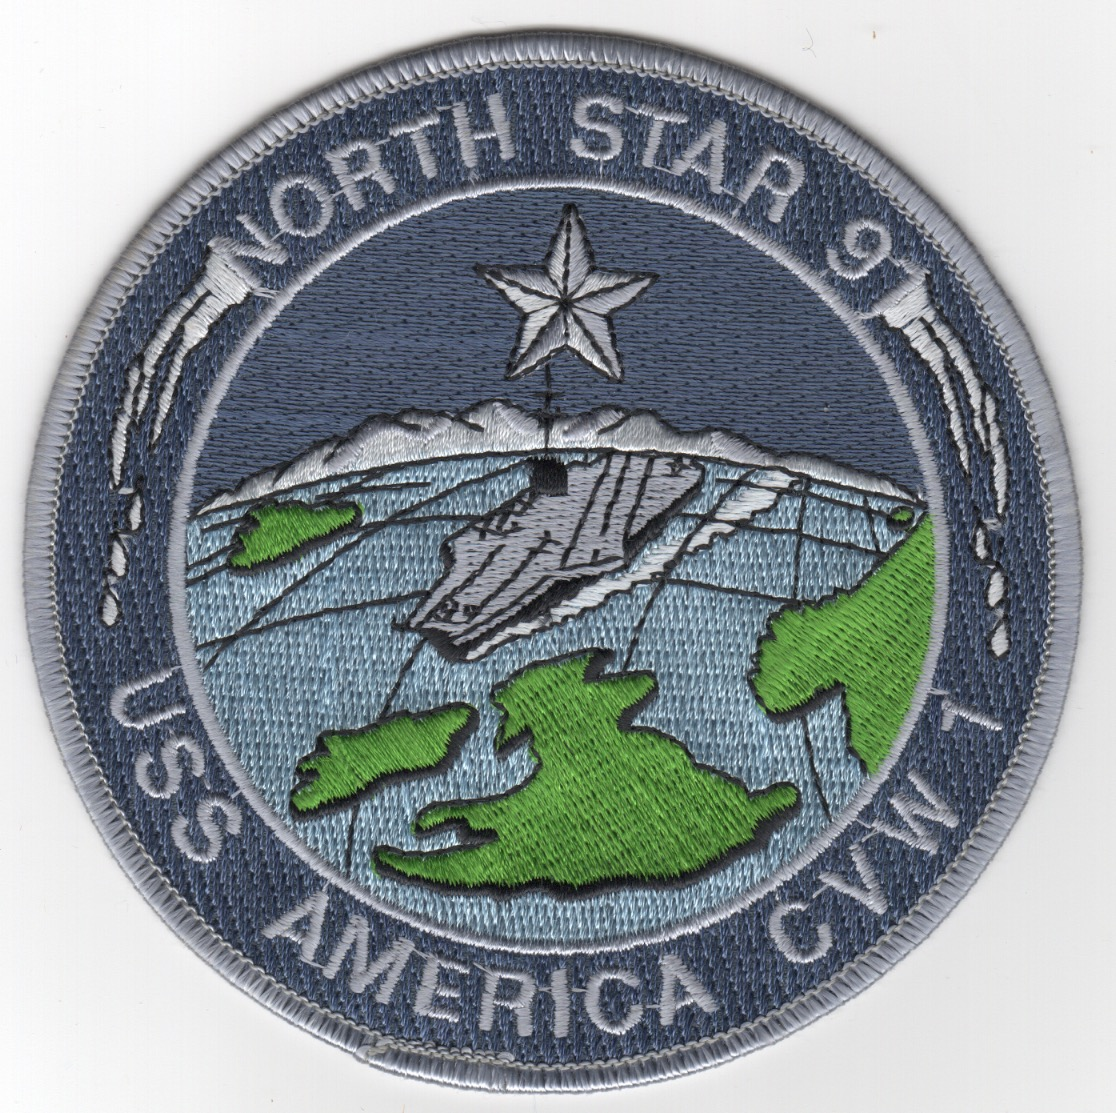 456) CV-66/CVW-1 1991 'NORTH STAR' Patch